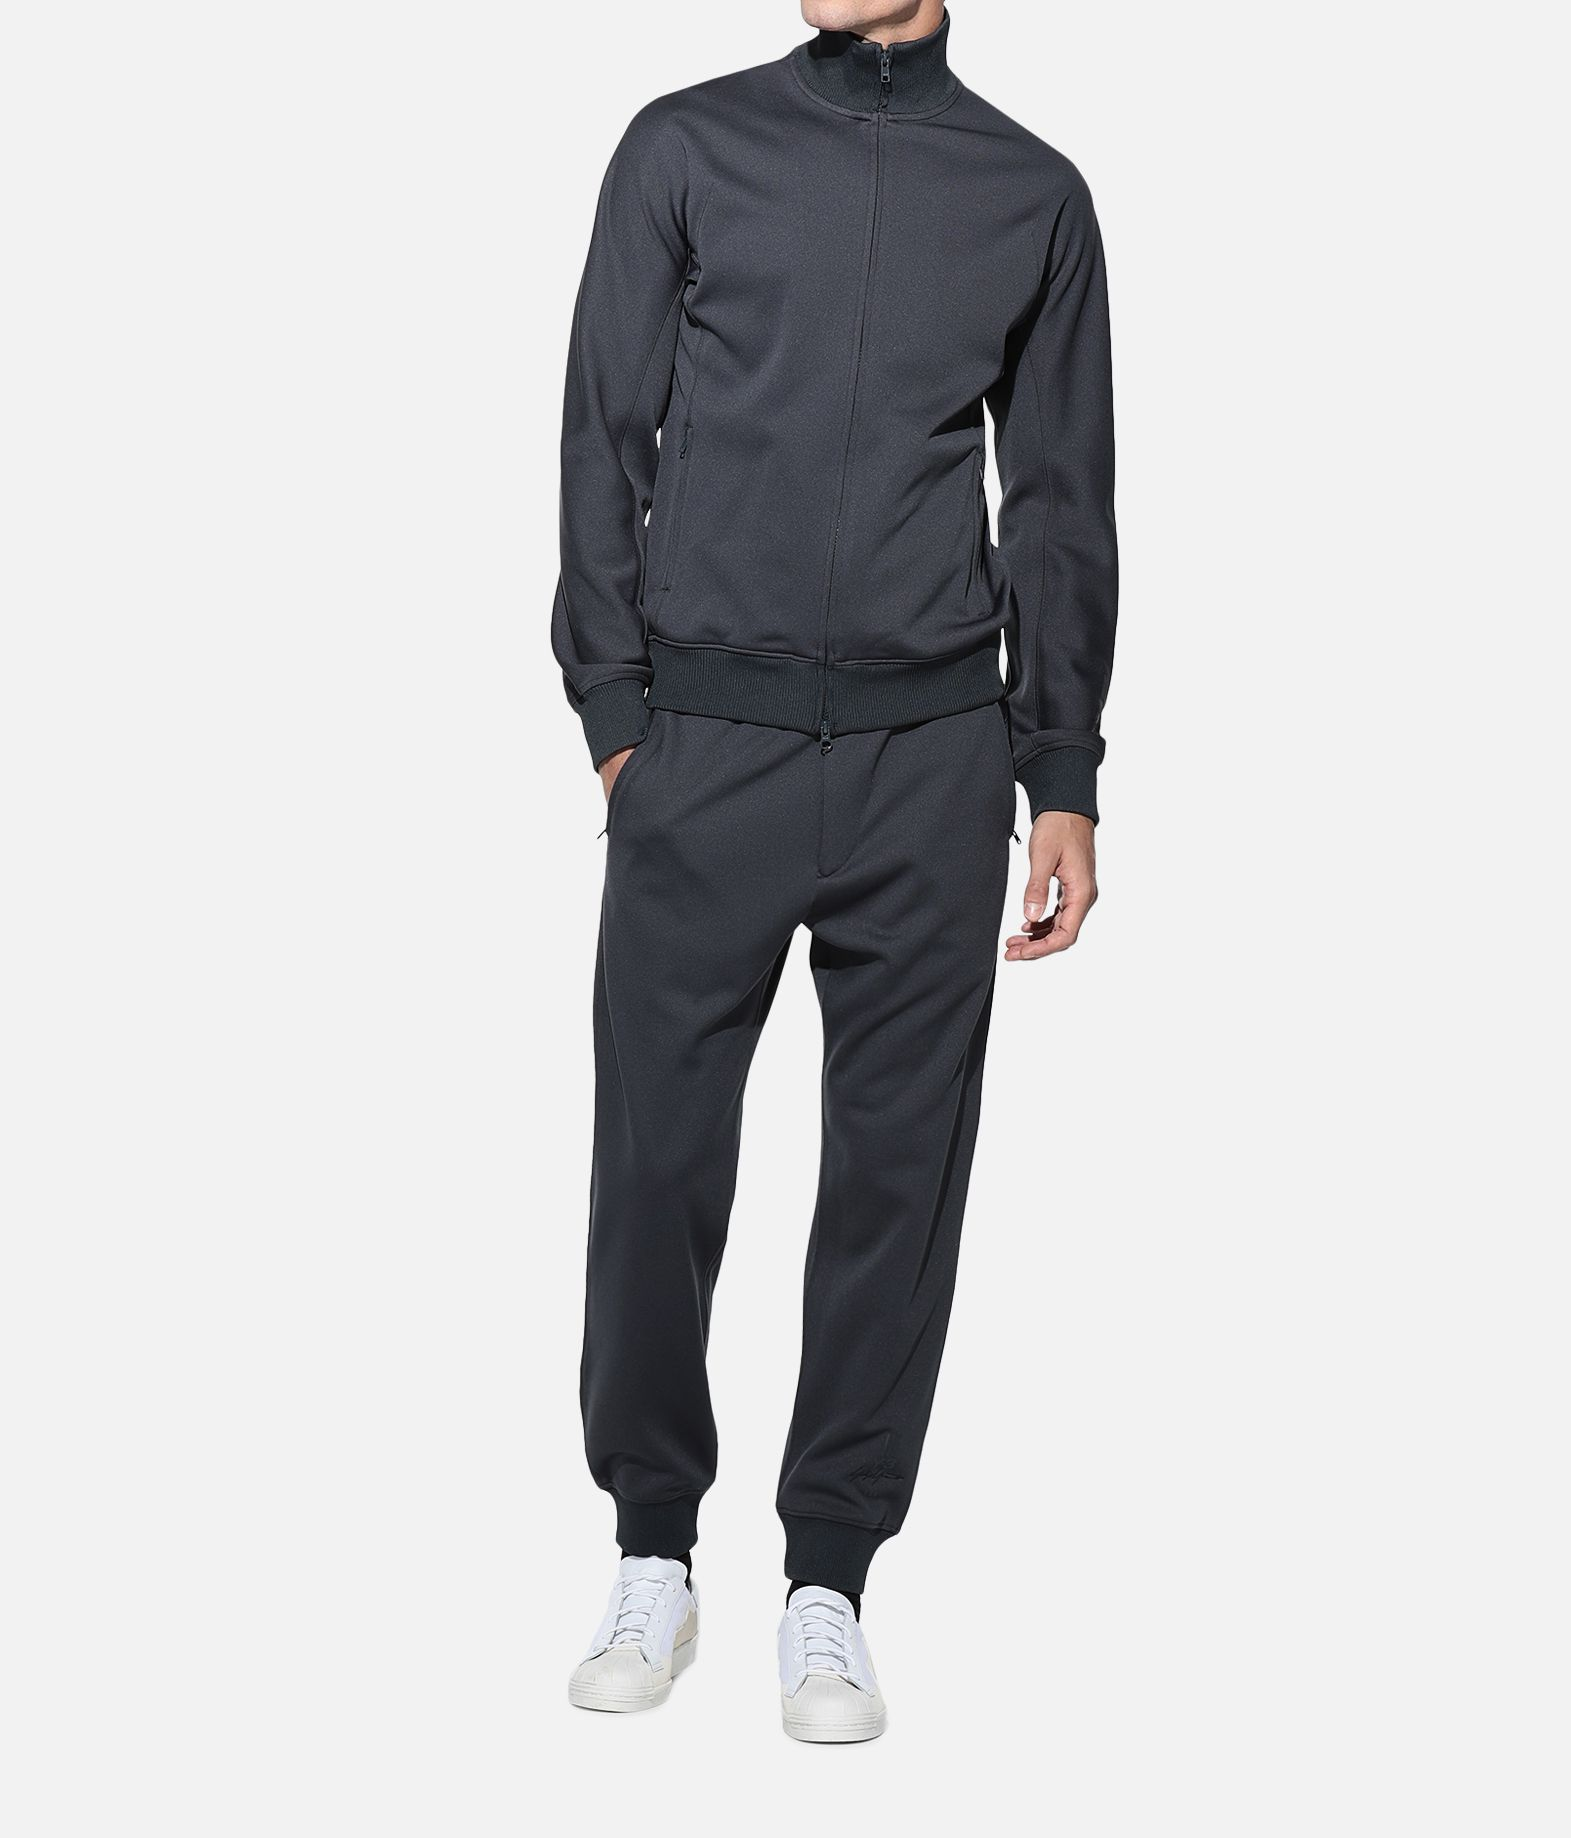 Y-3 Y-3 New Classic Track Pants Tracksuit bottoms Man a